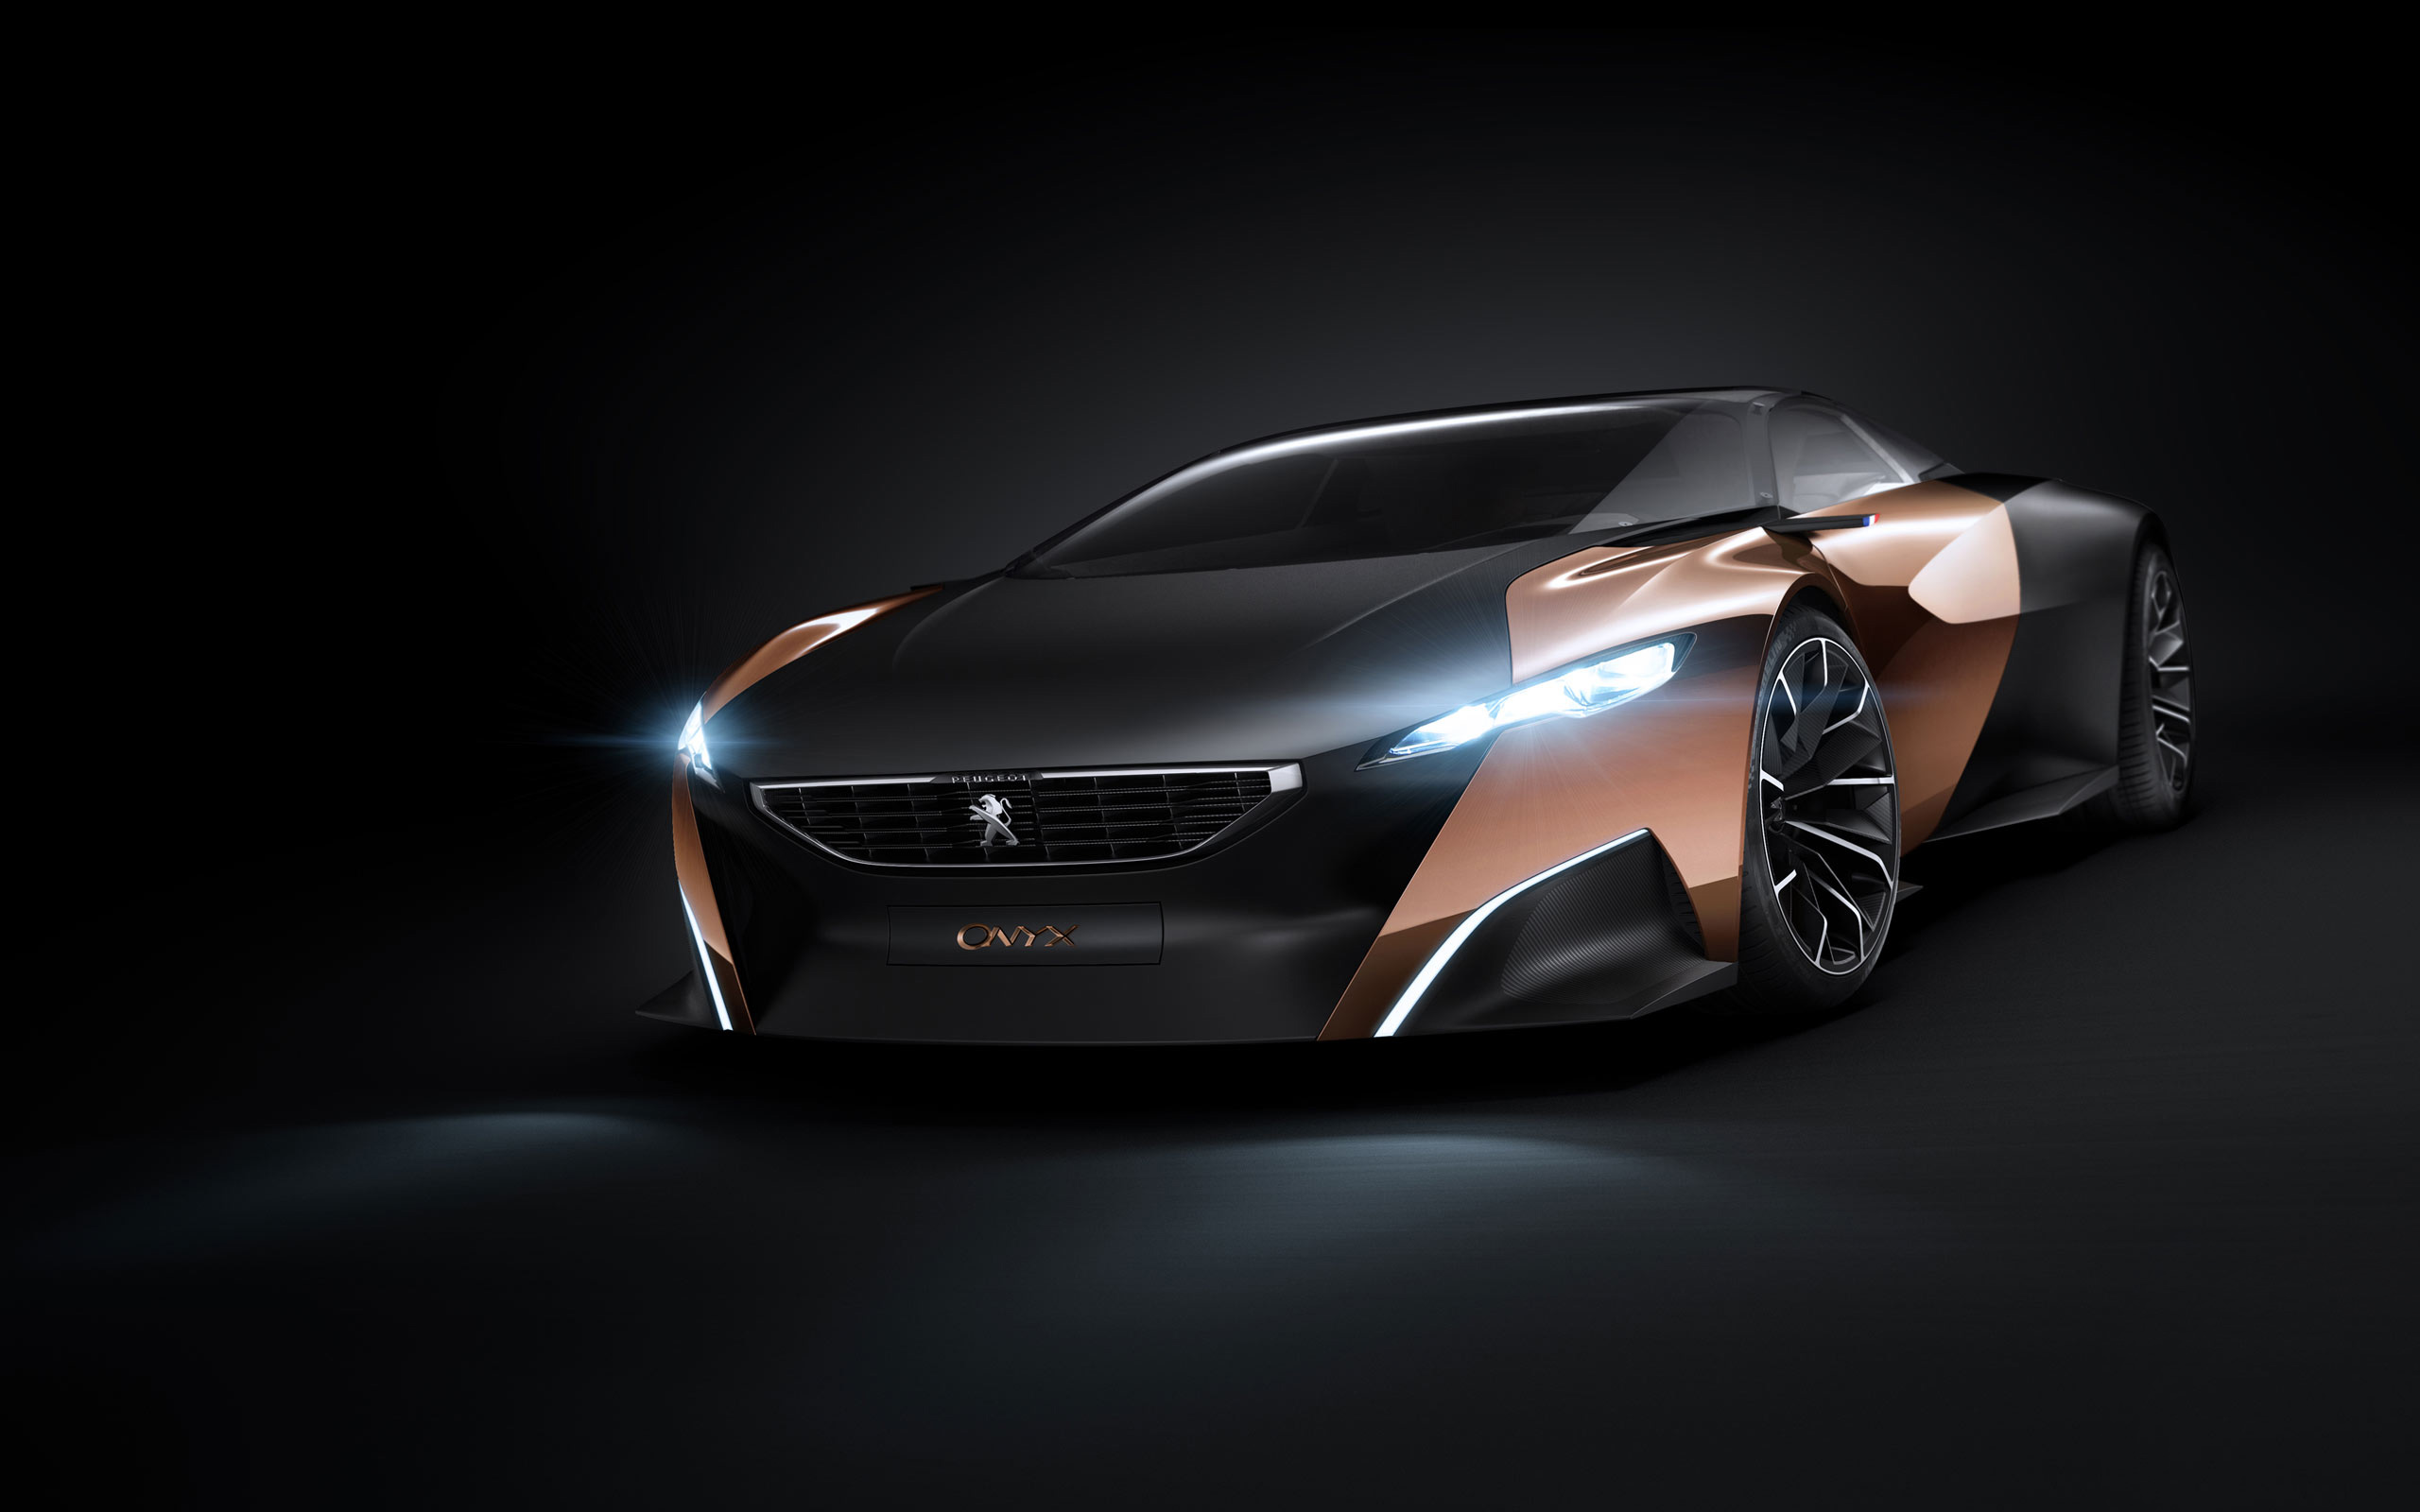 Peugeot Onyx Concept Car 2012 Wallpaper Hd Car Wallpapers Id 3081